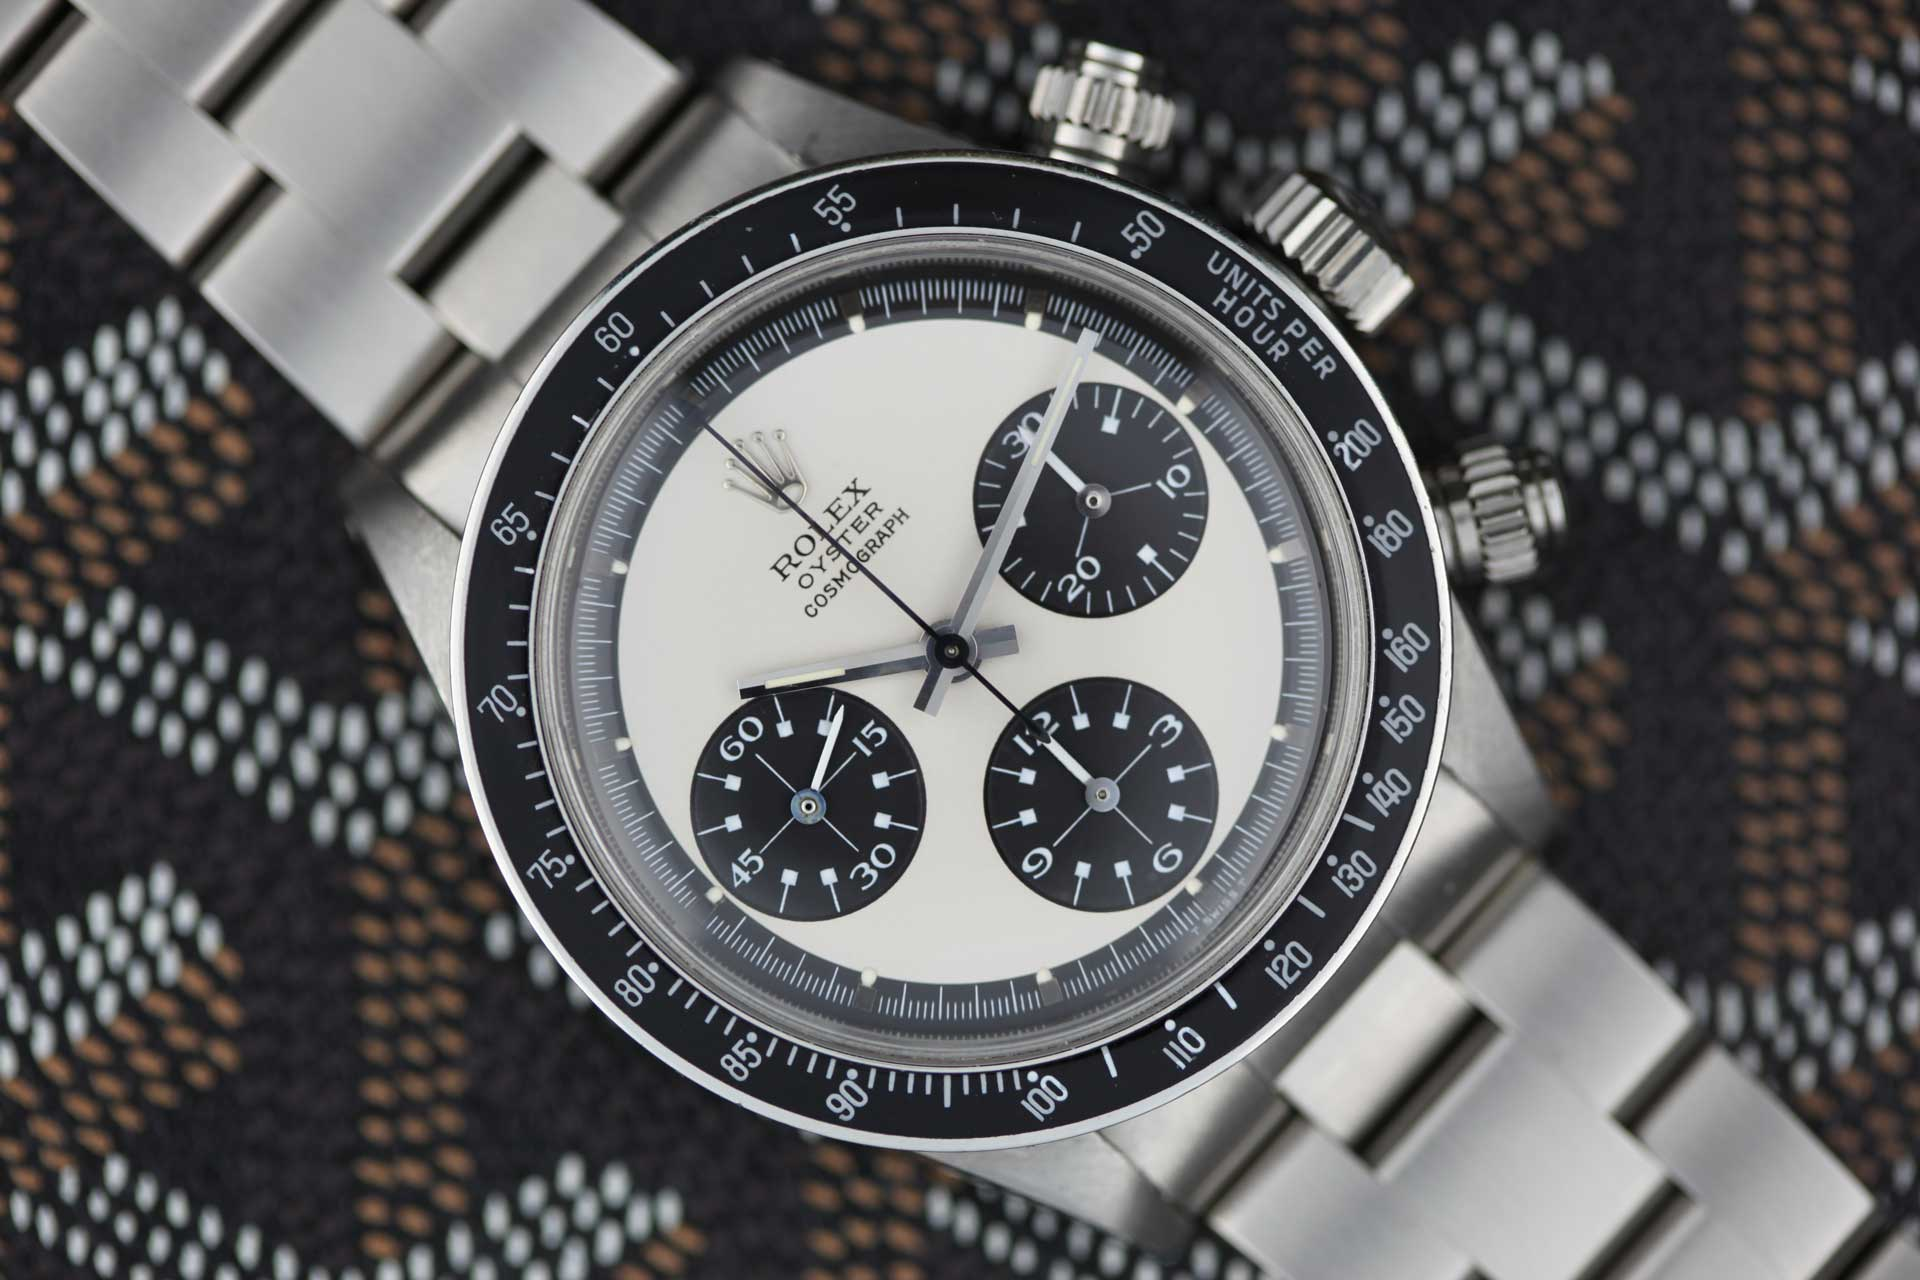 Mark 2 variety of the Paul Newman Daytona ref. 6263